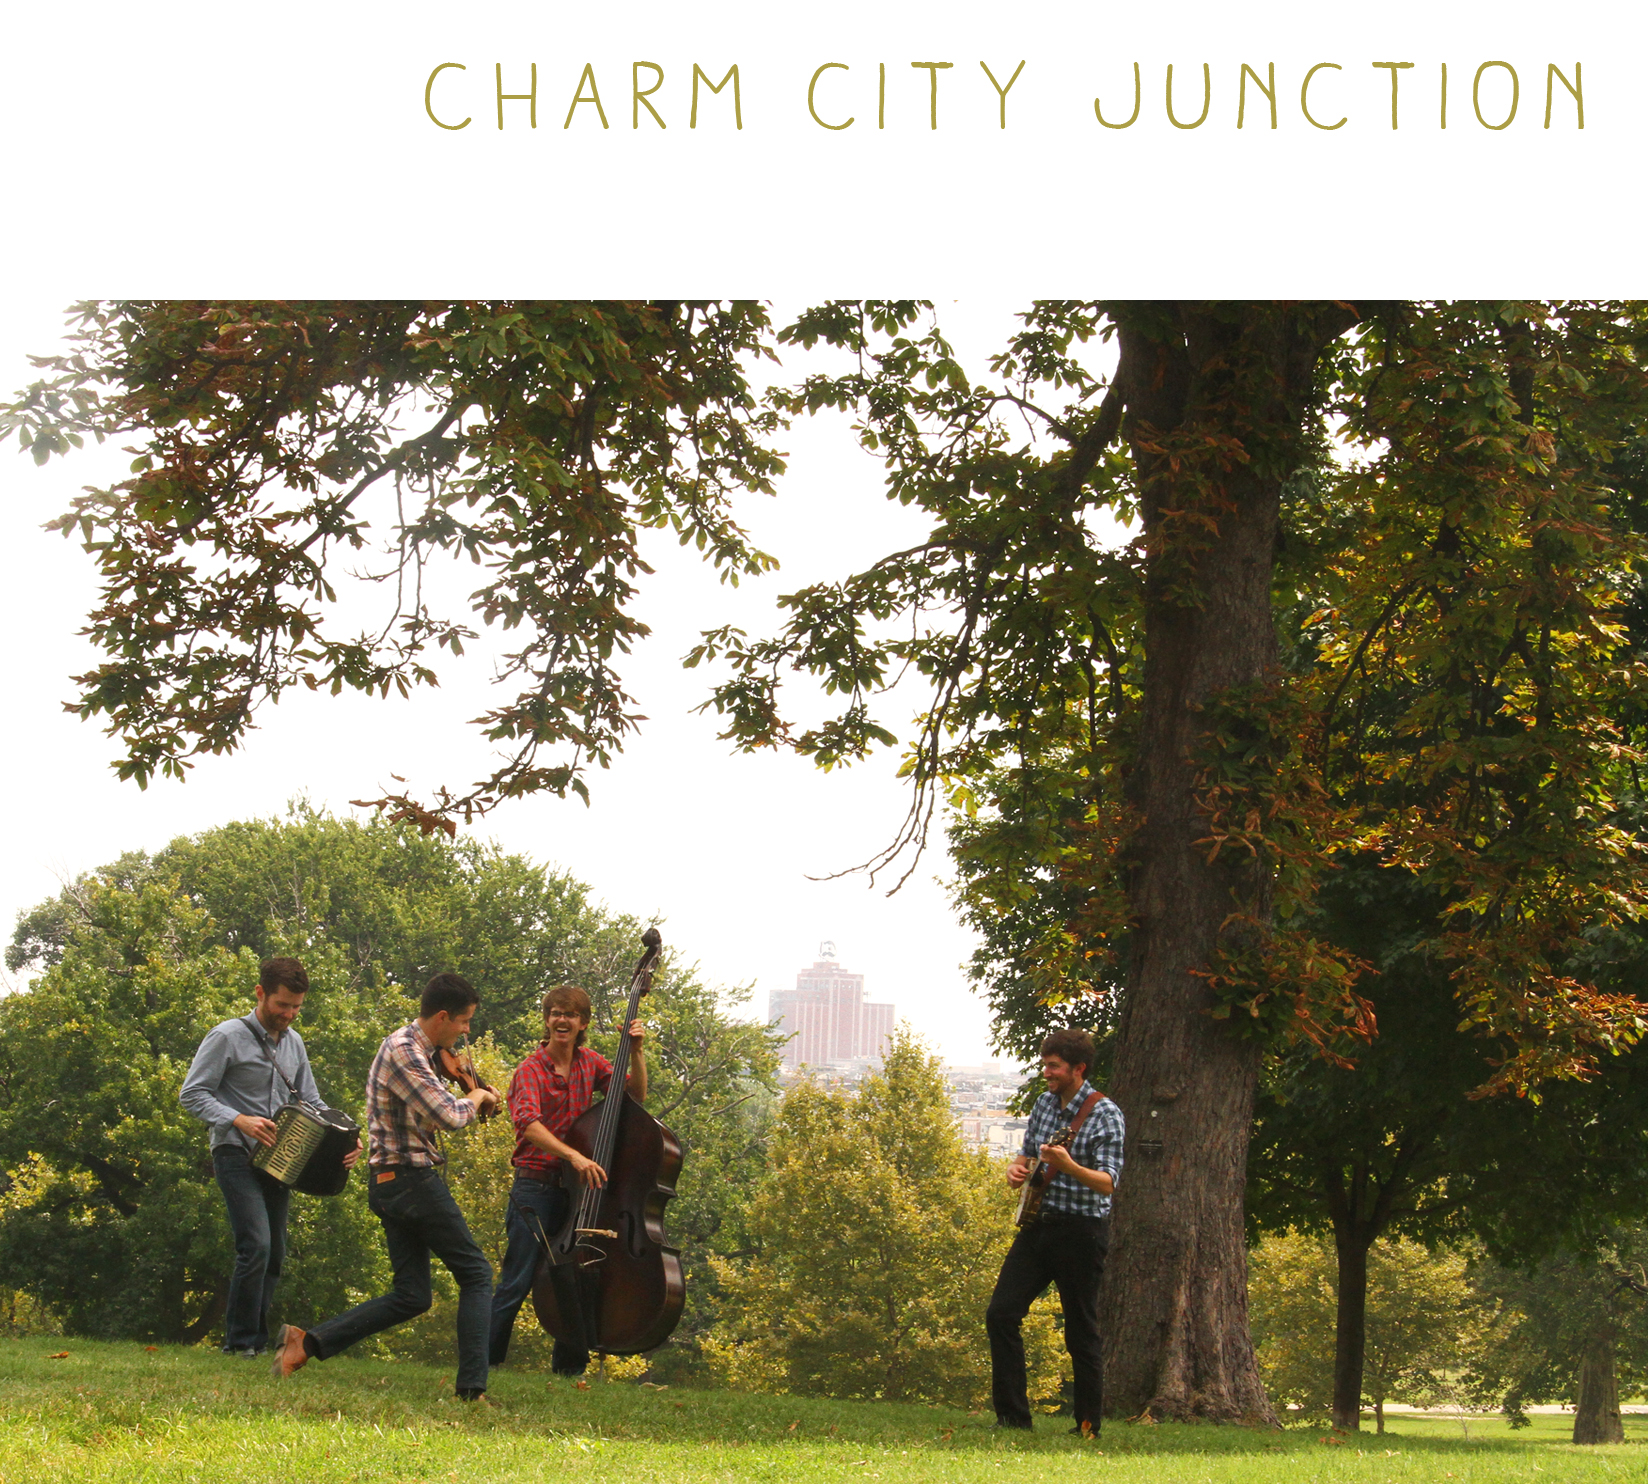 """""""Together they create an energetic amalgam that demonstrates their pure love of all these venerable musical idioms, but with a twist likely to satisfy anyone who appreciates traditional string music, expertly played... Charm City Junction  is a marvelous recording from an exciting new band. Don't let this one slip by you."""" – John Lawless,  Bluegrass Today"""